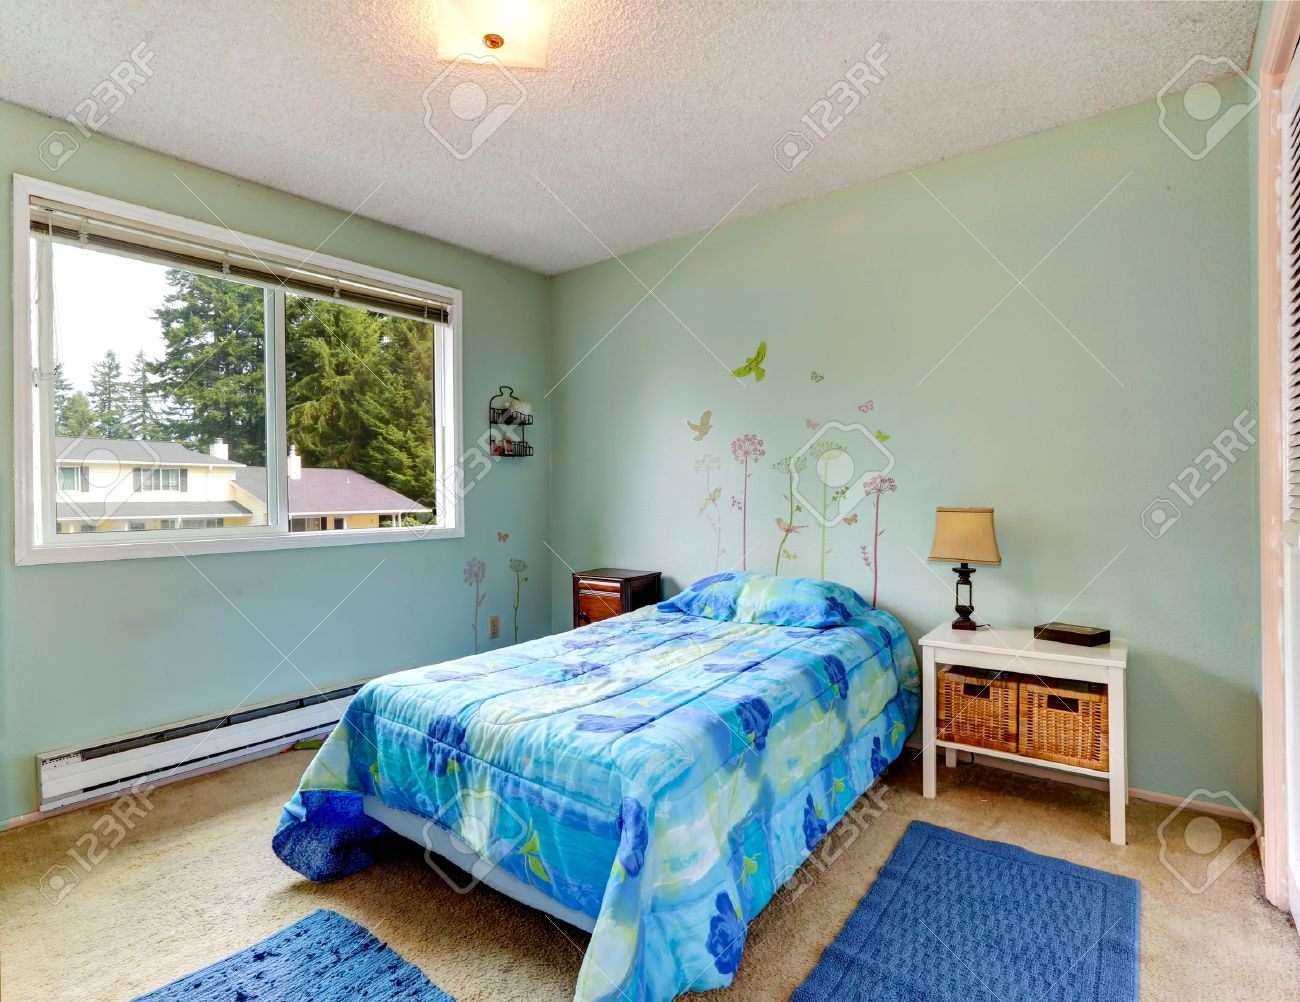 Aqua tones small bedroom interior with blue bed and rugs